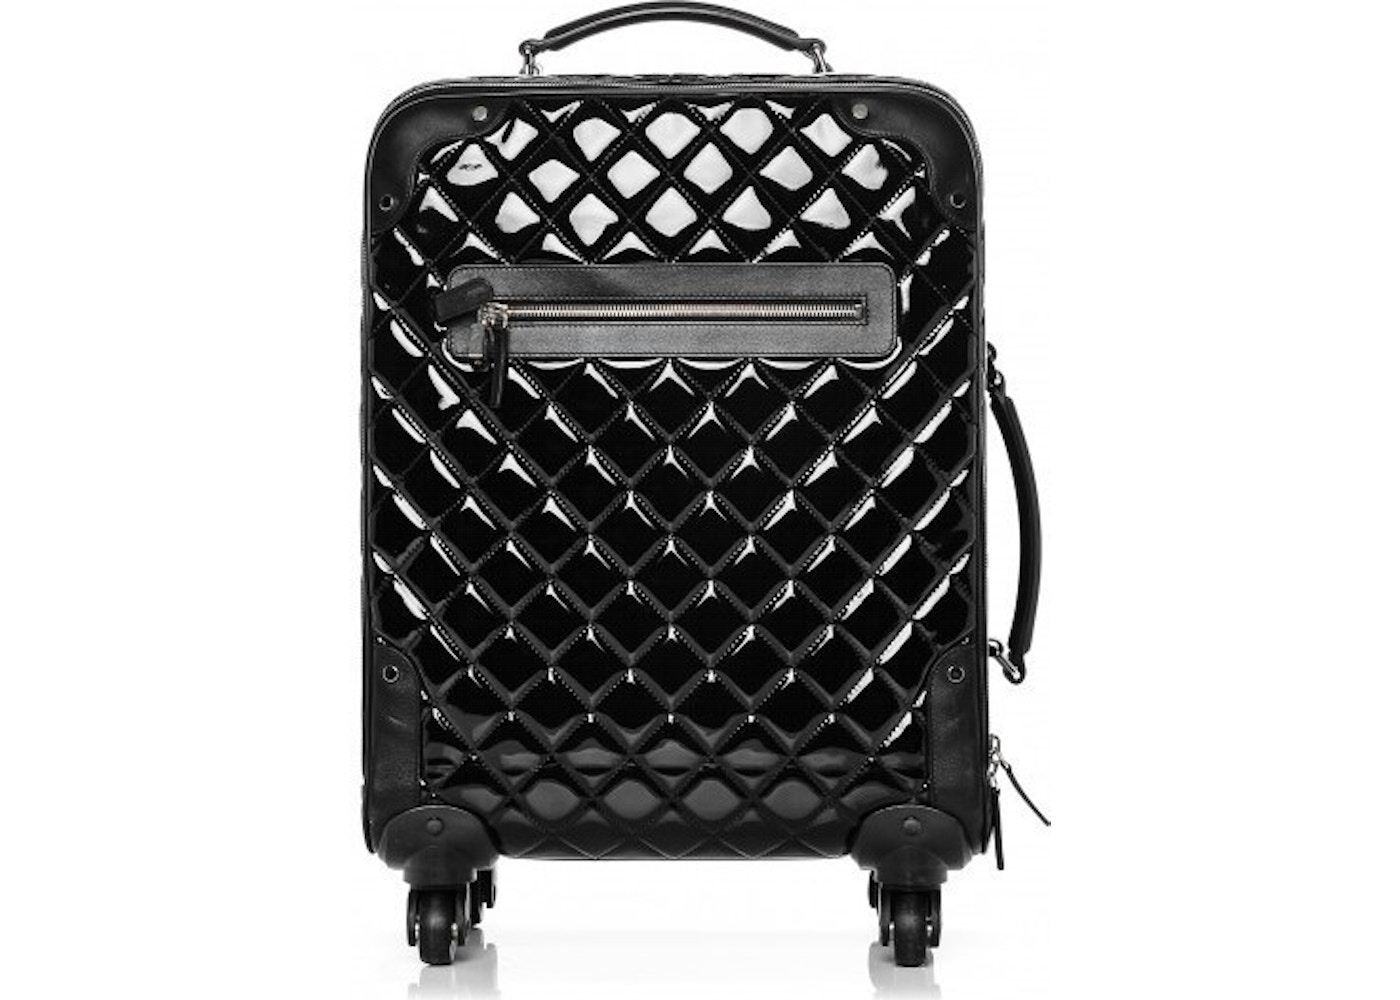 9b8394c02941 Chanel Luggage Rolling Trolley Diamond Quilted Black. Diamond Quilted Black